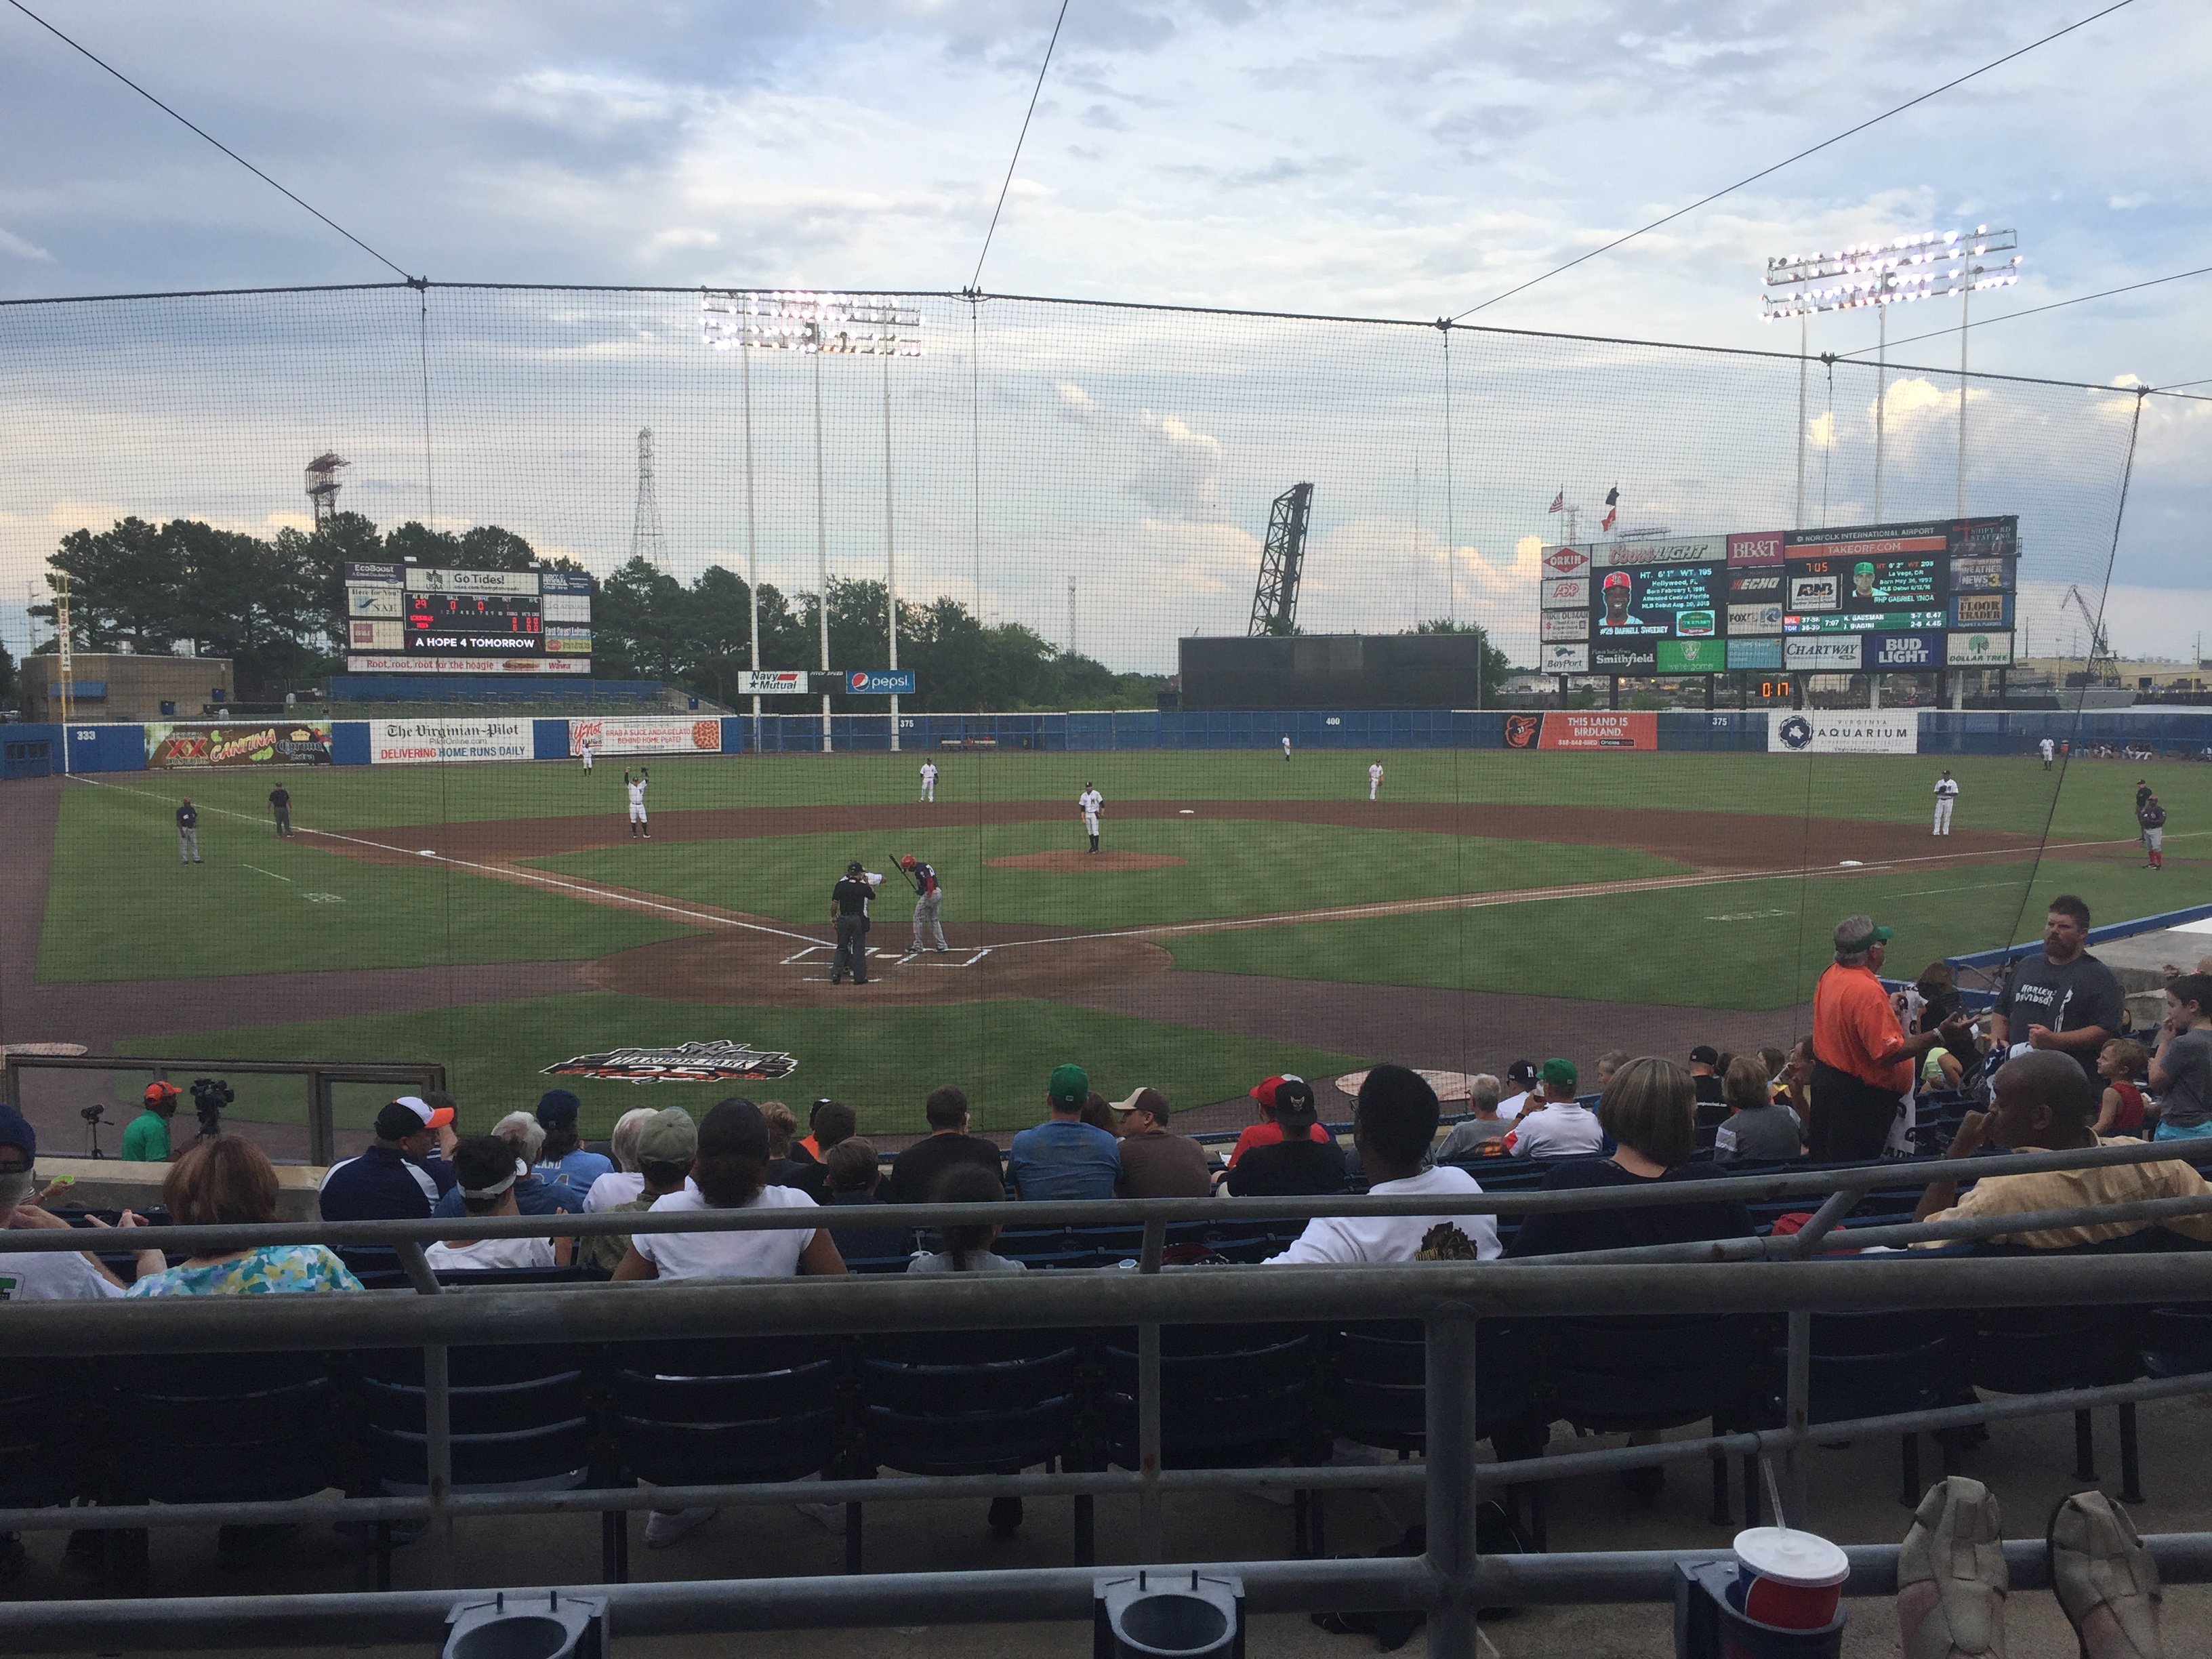 Harbor park norfolk tides stadium journey field view from behind home nvjuhfo Image collections